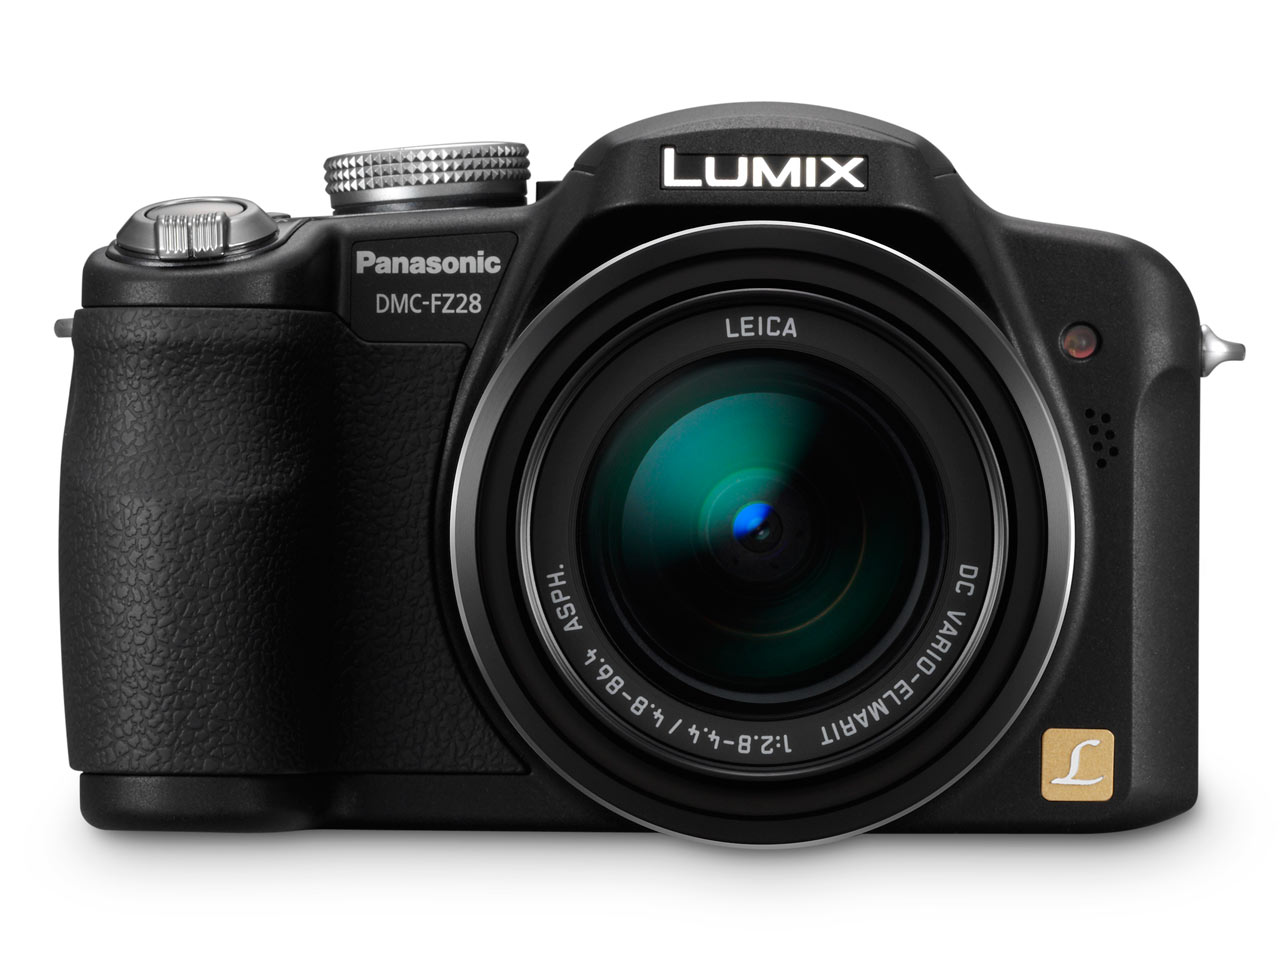 panasonic lumix dmc fz28 digital photography review rh dpreview com